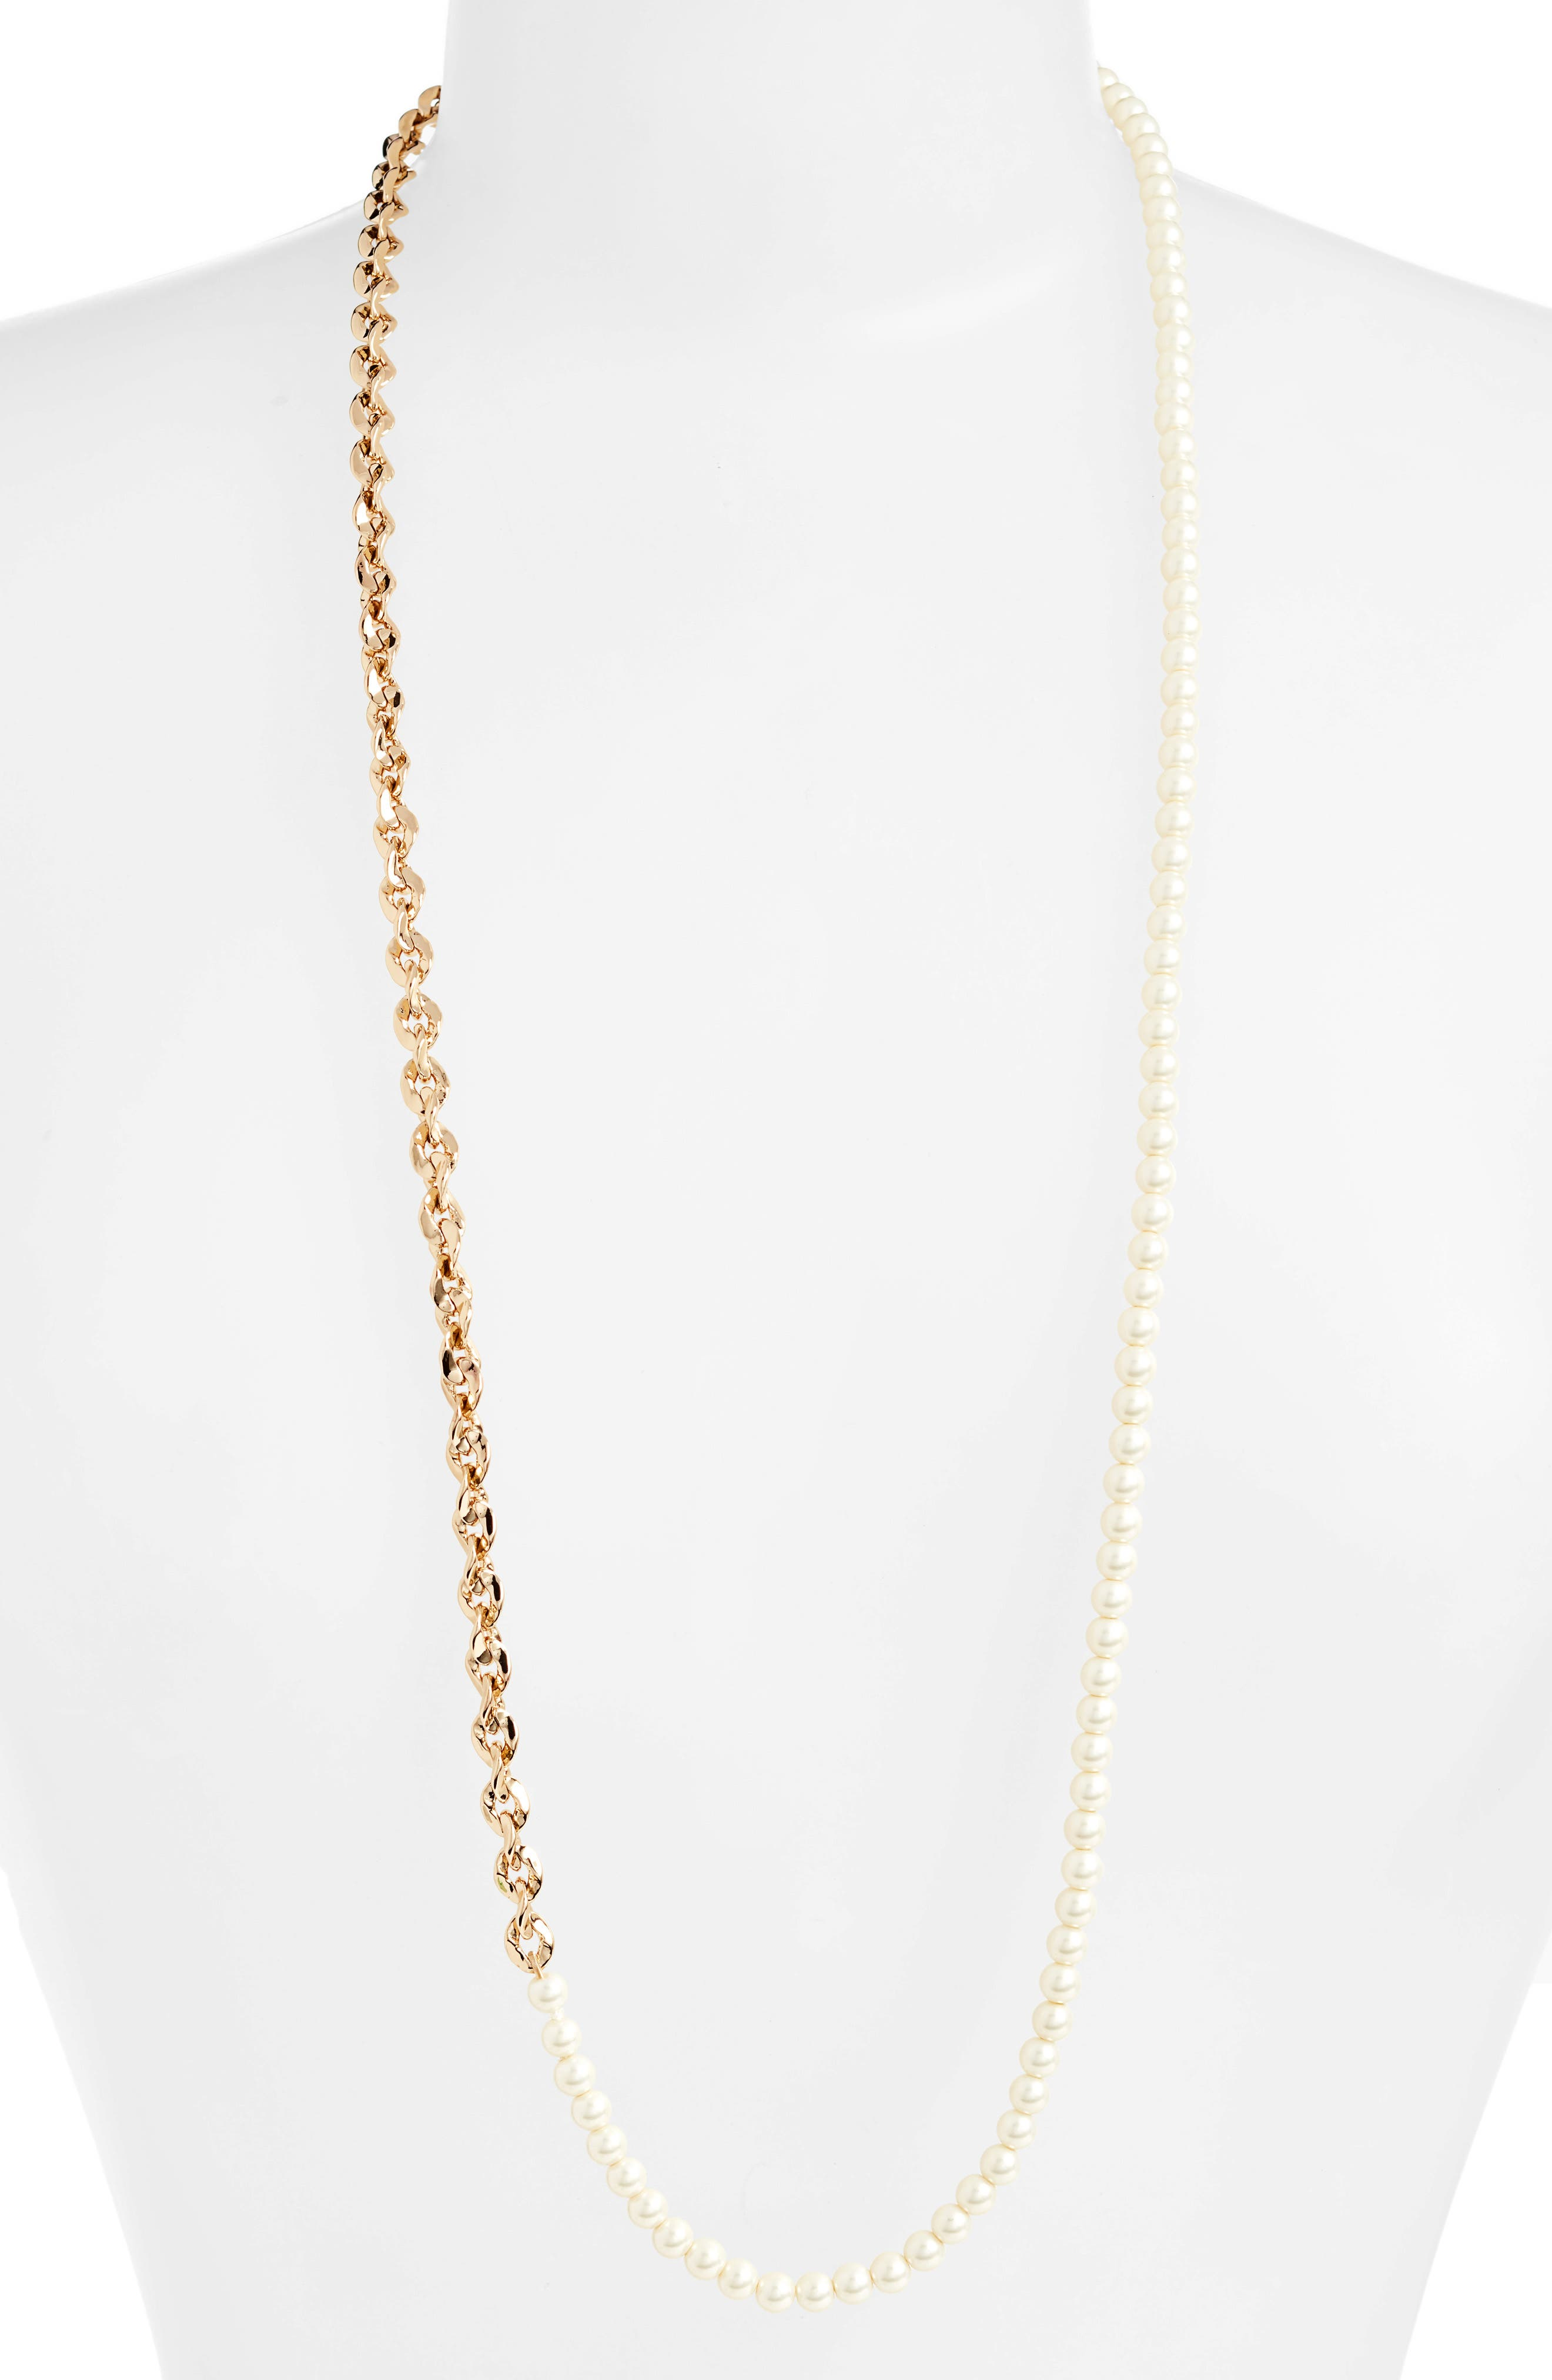 Imitation Pearl & Chain Necklace,                             Main thumbnail 1, color,                             GOLD/ PEARL